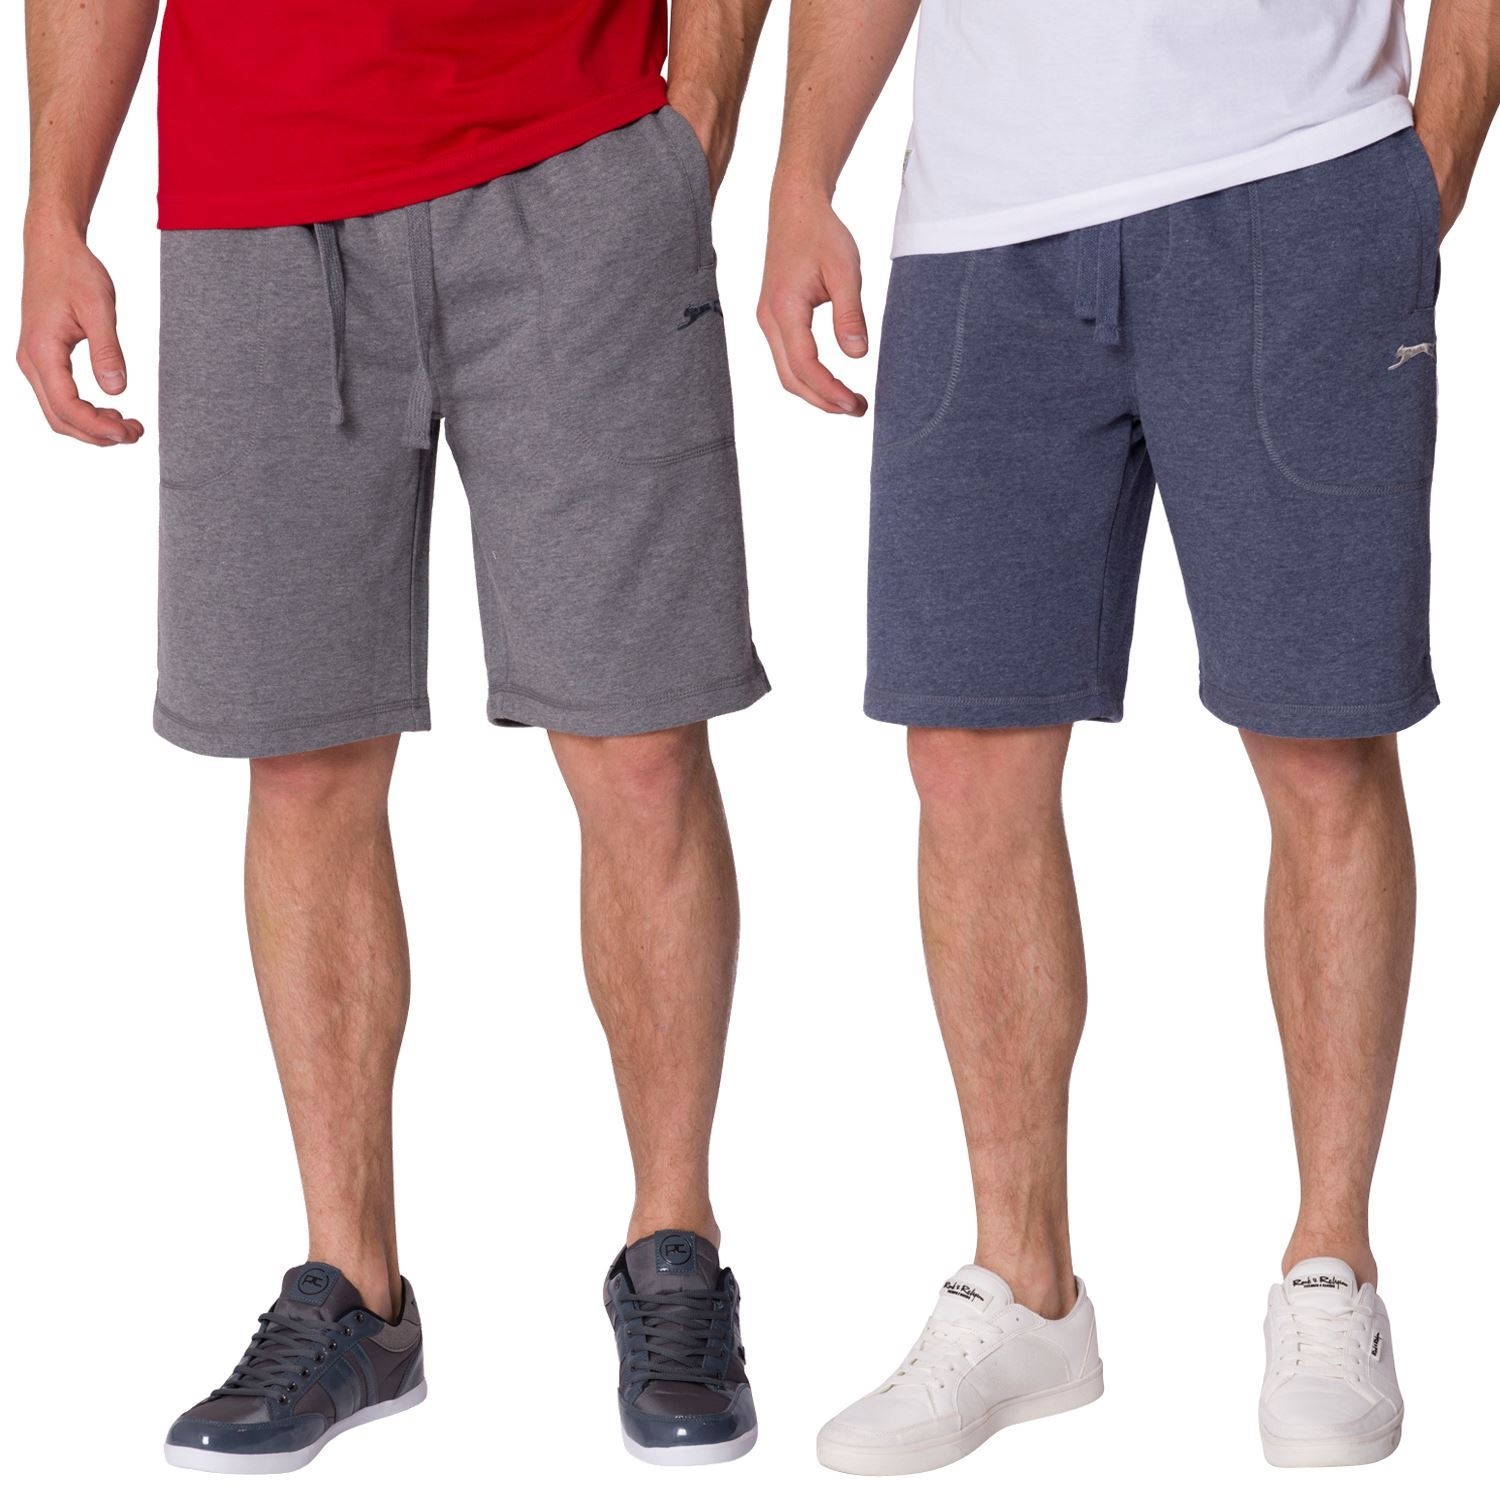 Men's Fleece Shorts. from $ 22 01 Prime. out of 5 stars Men Champion. Champion Men's Tech Fleece Short. from $ 19 99 Prime. 5 out of 5 stars 2. Russell Athletic Heritage. Men's Iconic Arch Fench Terry Fleece Cut Off Shorts. from $ 11 45 Prime. out of 5 stars 3. Hat and Beyond.